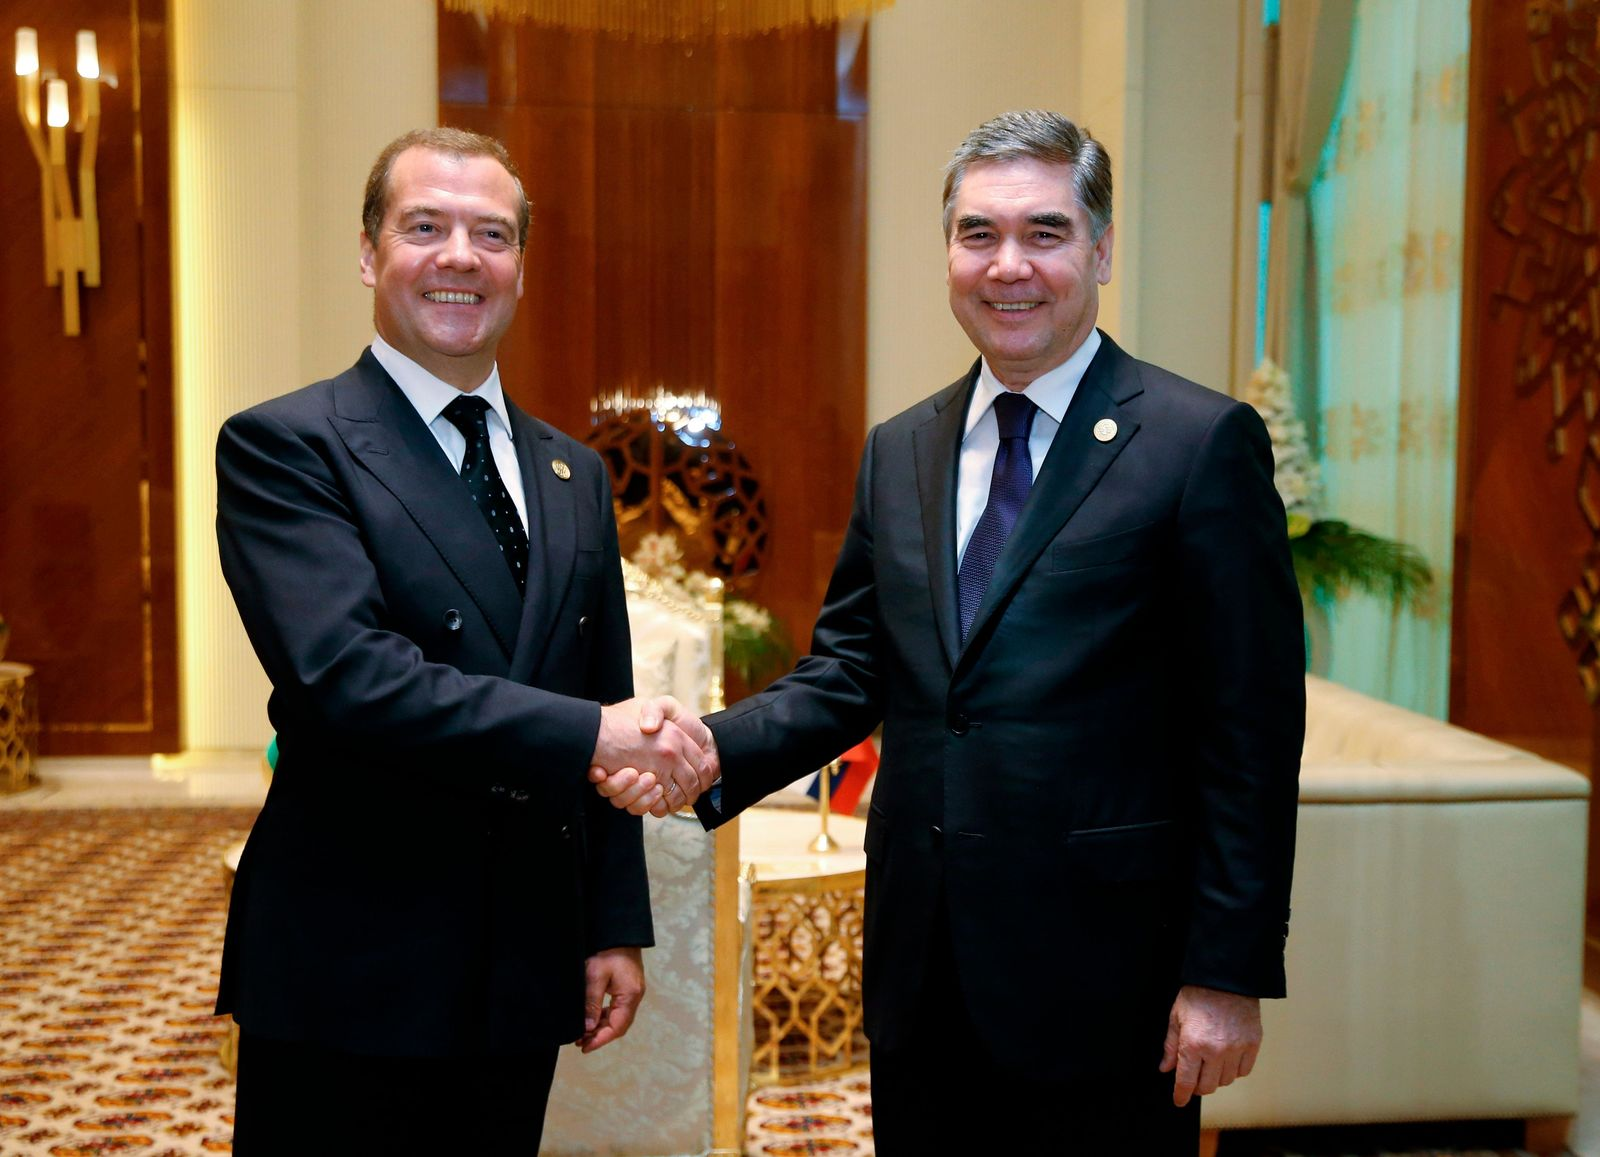 Russian Prime Minister Dmitry Medvedev, left, and Turkmenistan's President Gurbanguly Berdymukhamedov smile as they shake hands during the First Caspian Economic Forum in Turkmenbashi, Turkmenistan, Monday, Aug. 12, 2019. (Dmitry Astakhov, Sputnik, Government Pool Photo via AP)